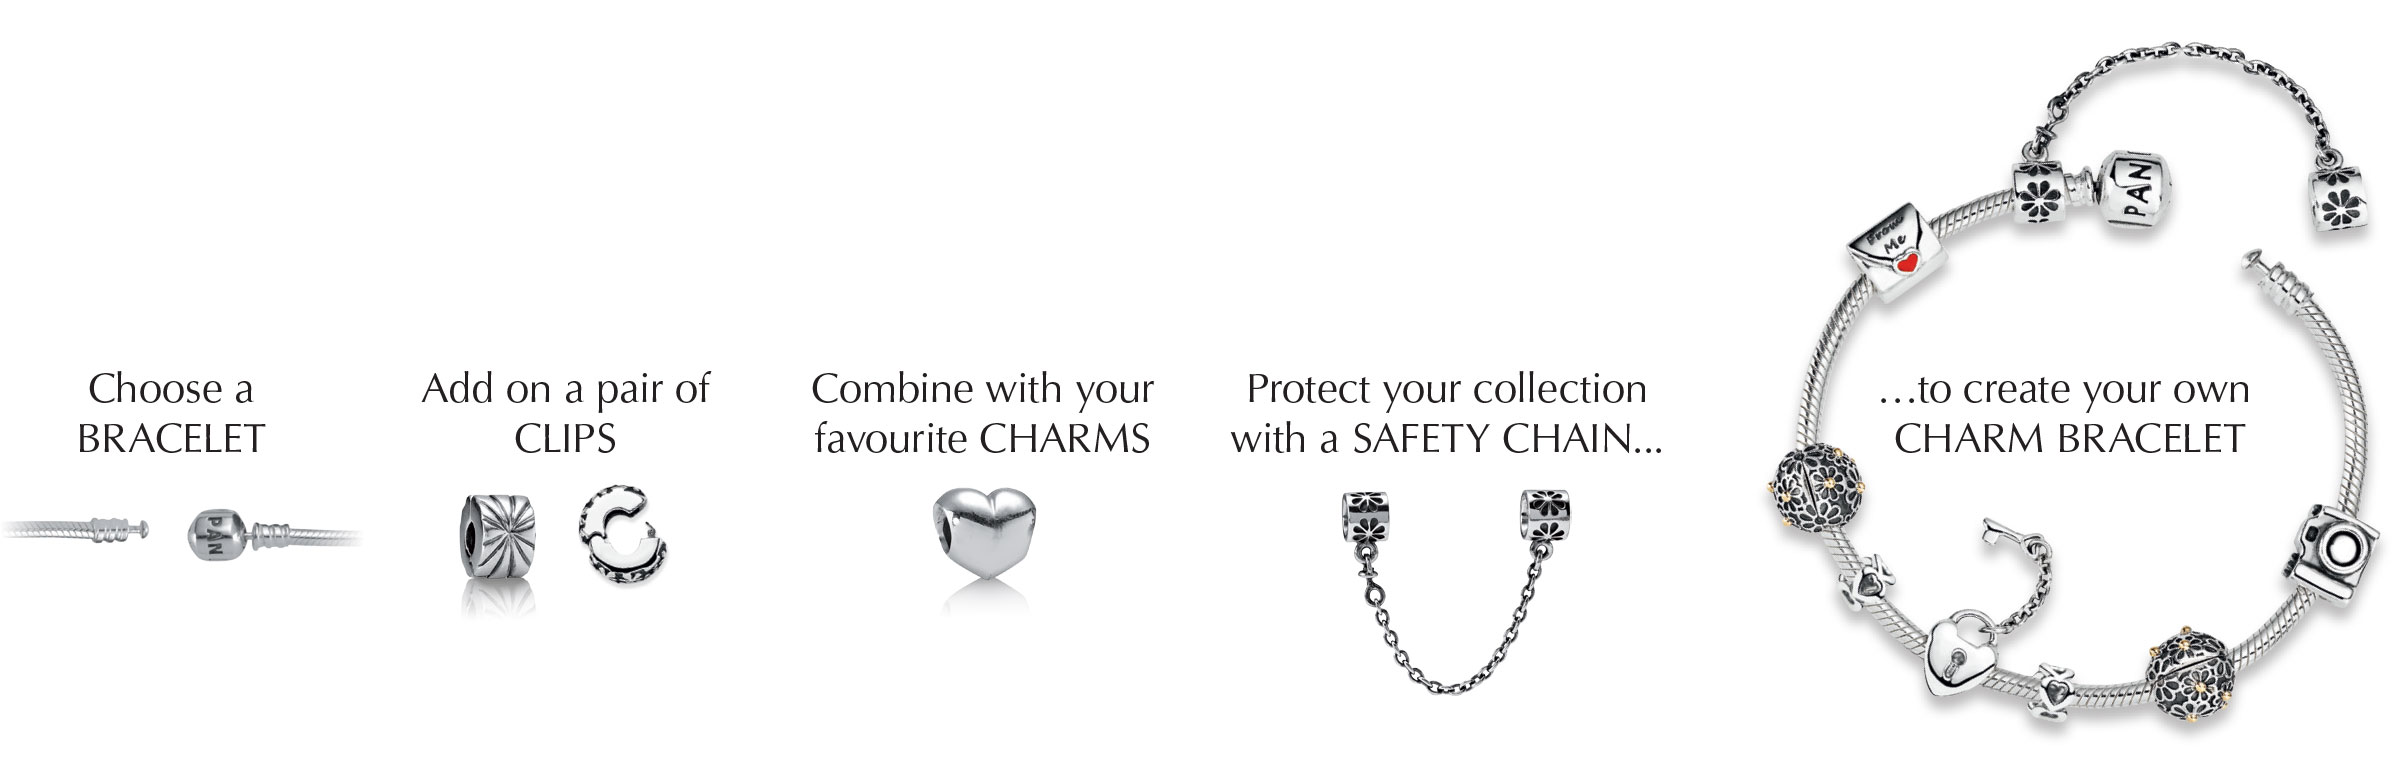 If You Choose To Add The Decorative Safety Chain Place Swivel Cuff Onto Your Bracelet First Then Arrange Charms In Desired Order And Finish With